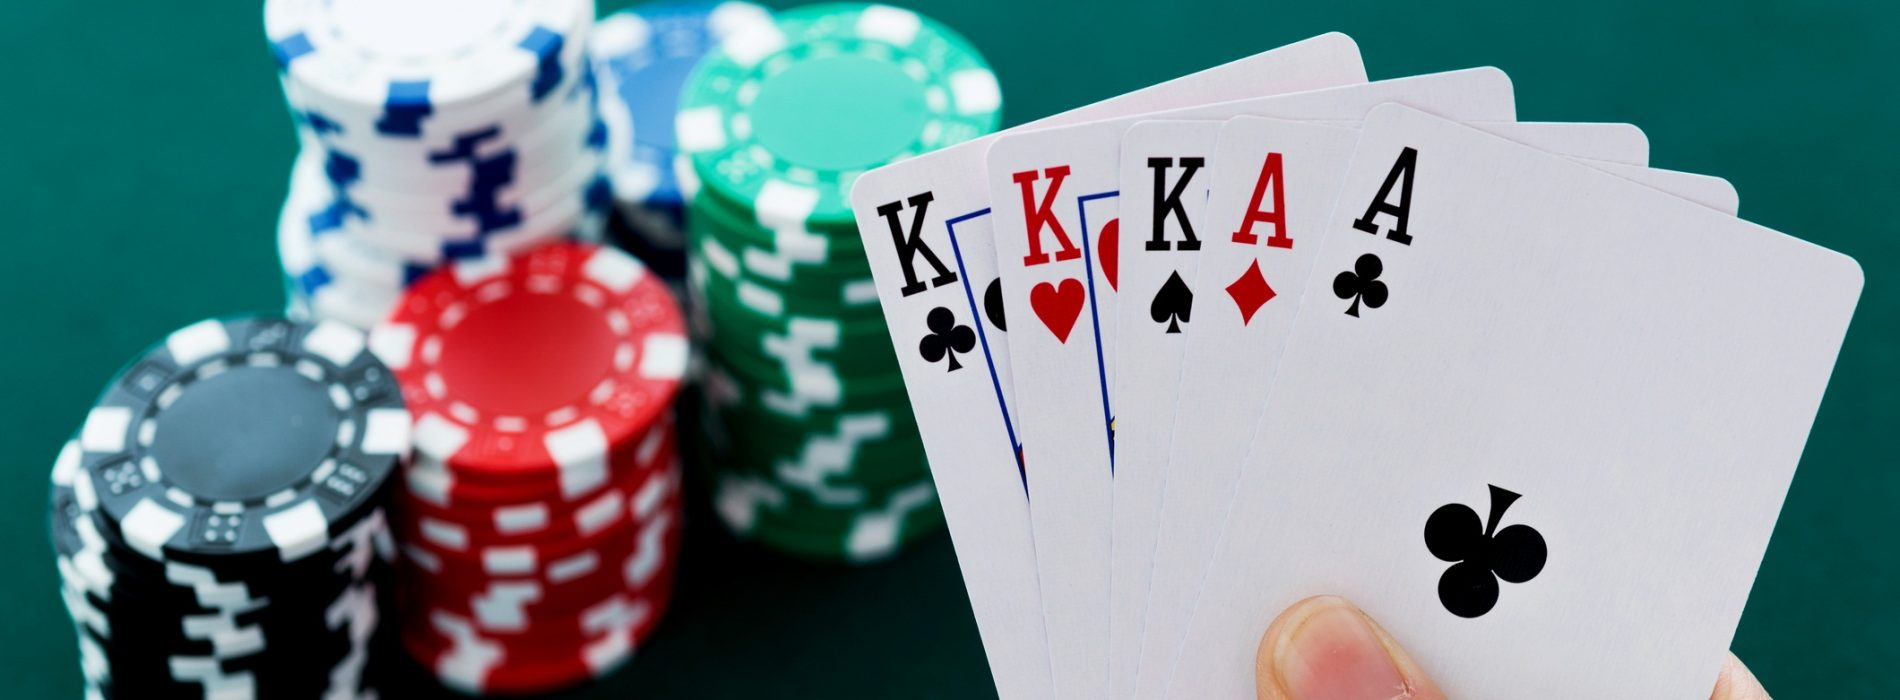 Play poker online and make real money without investing a large capital